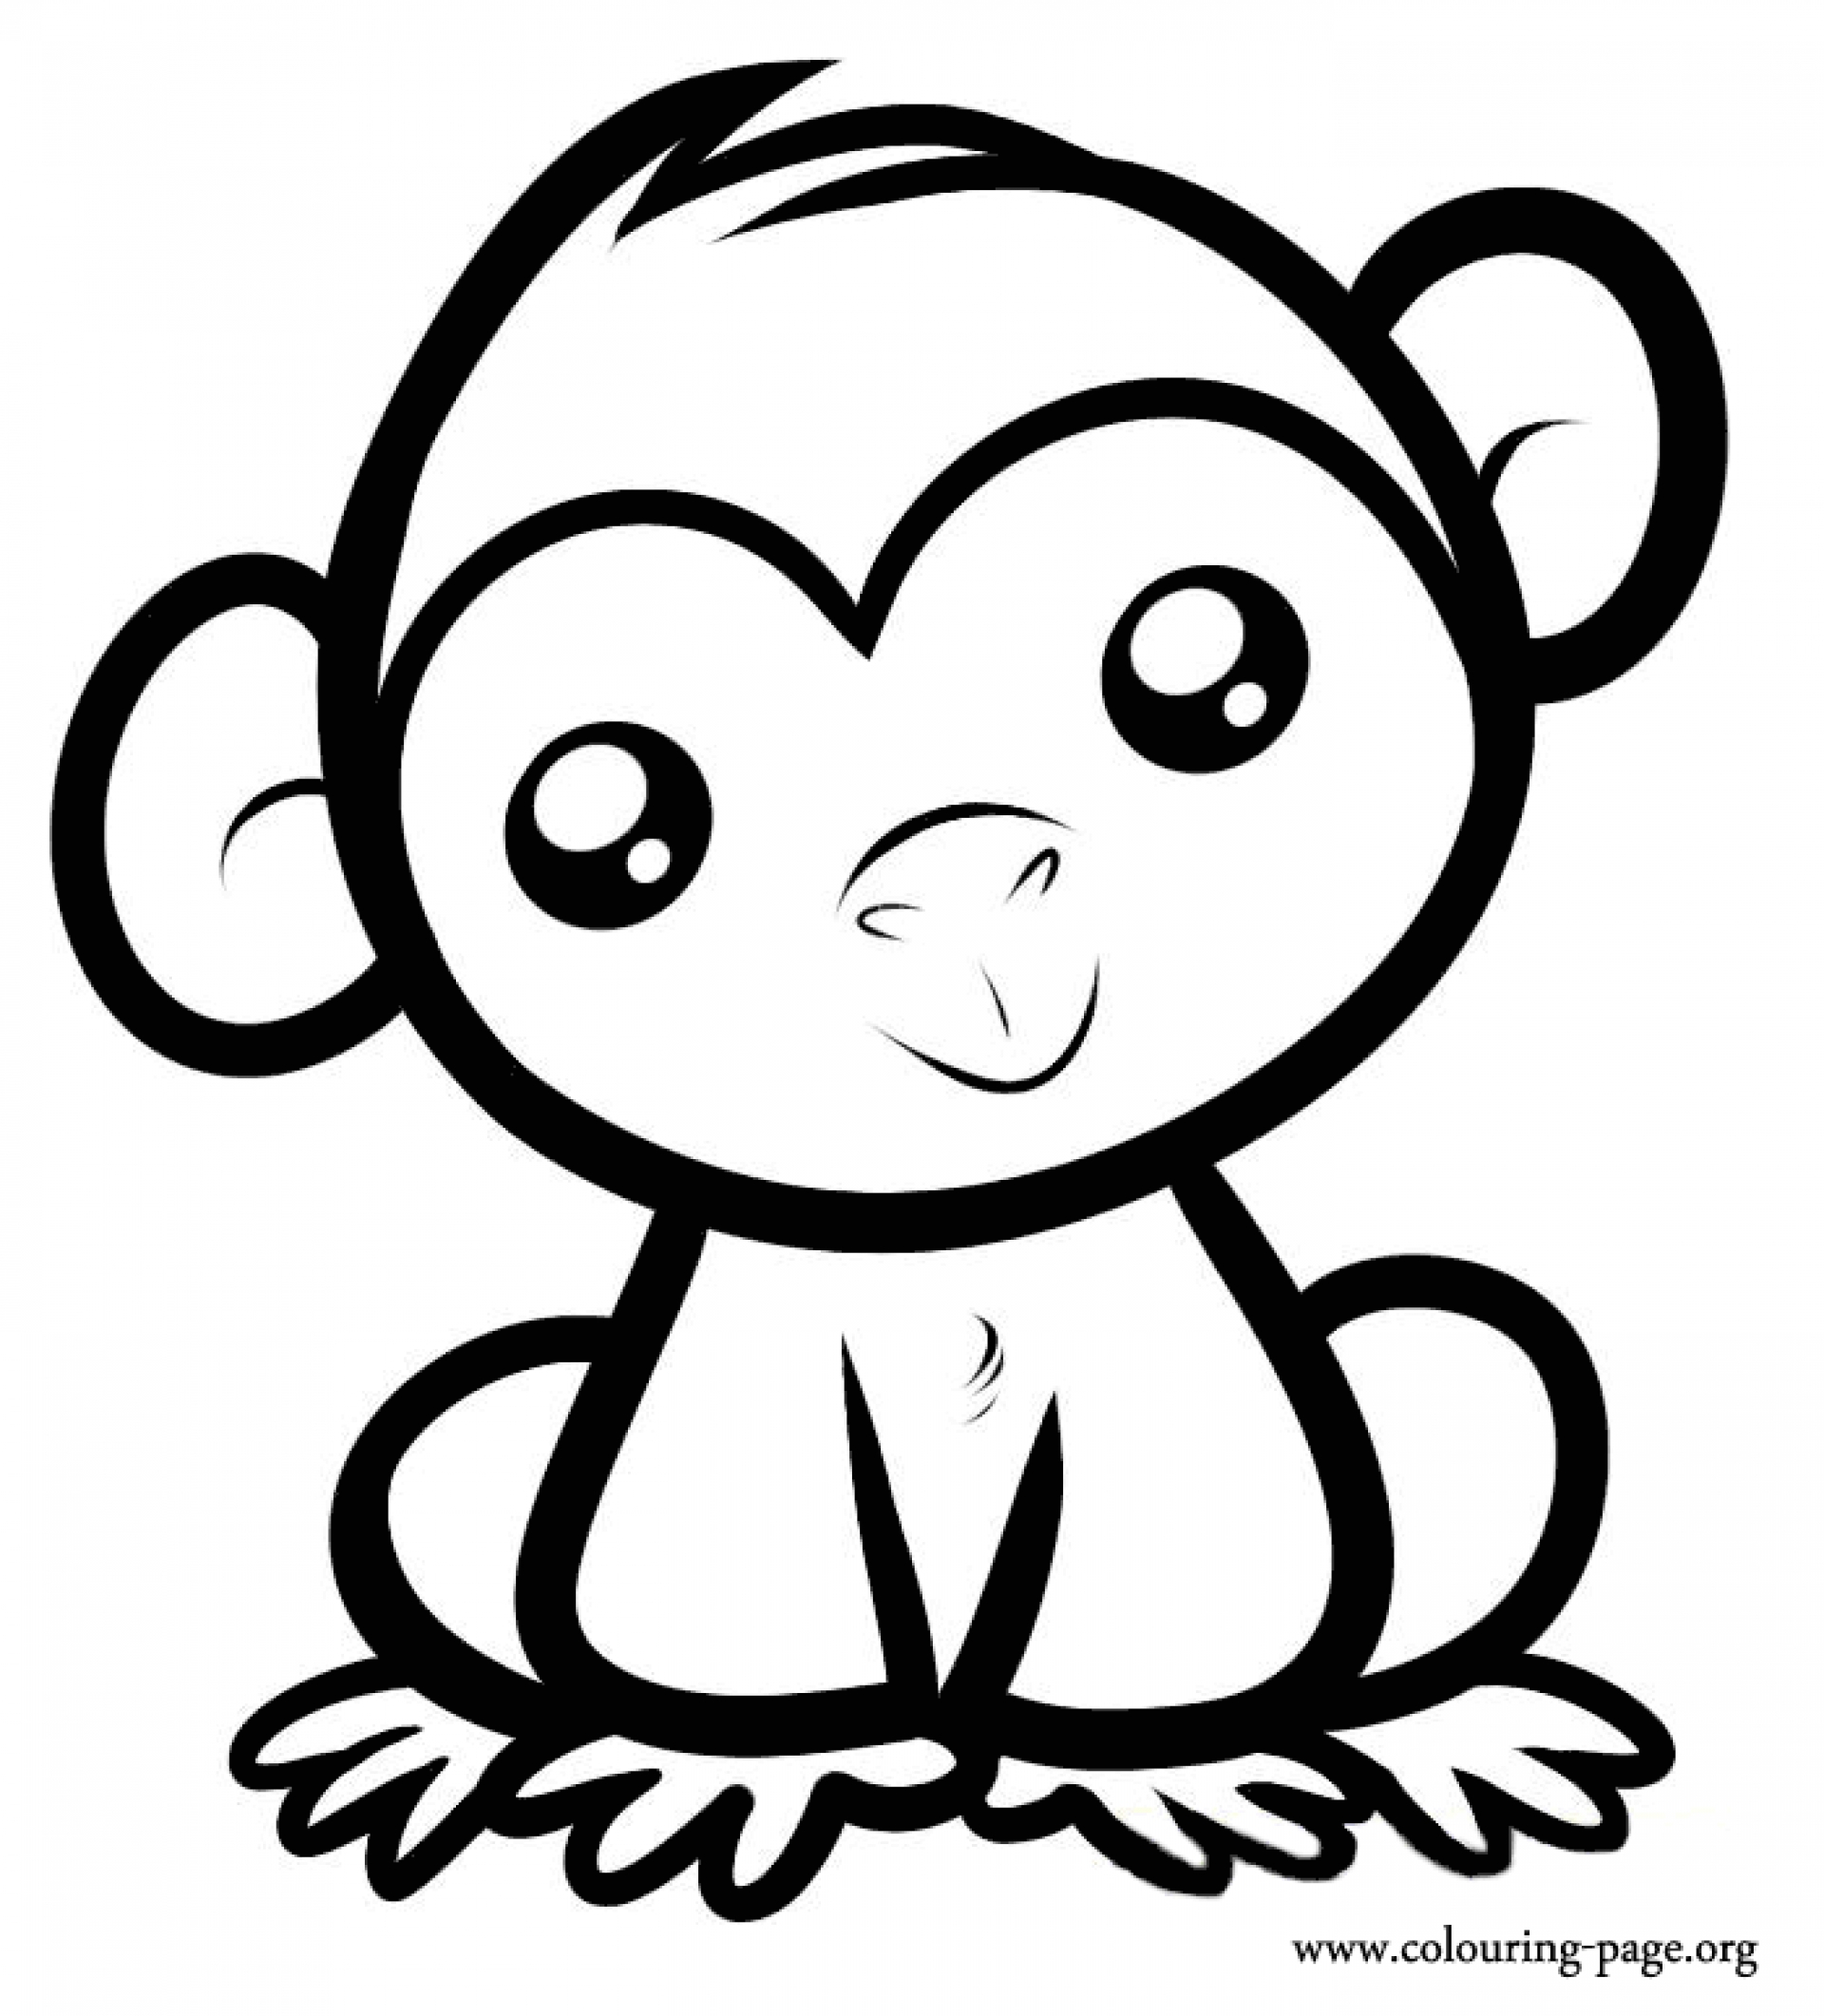 cartoon monkeys coloring pages - photo#17